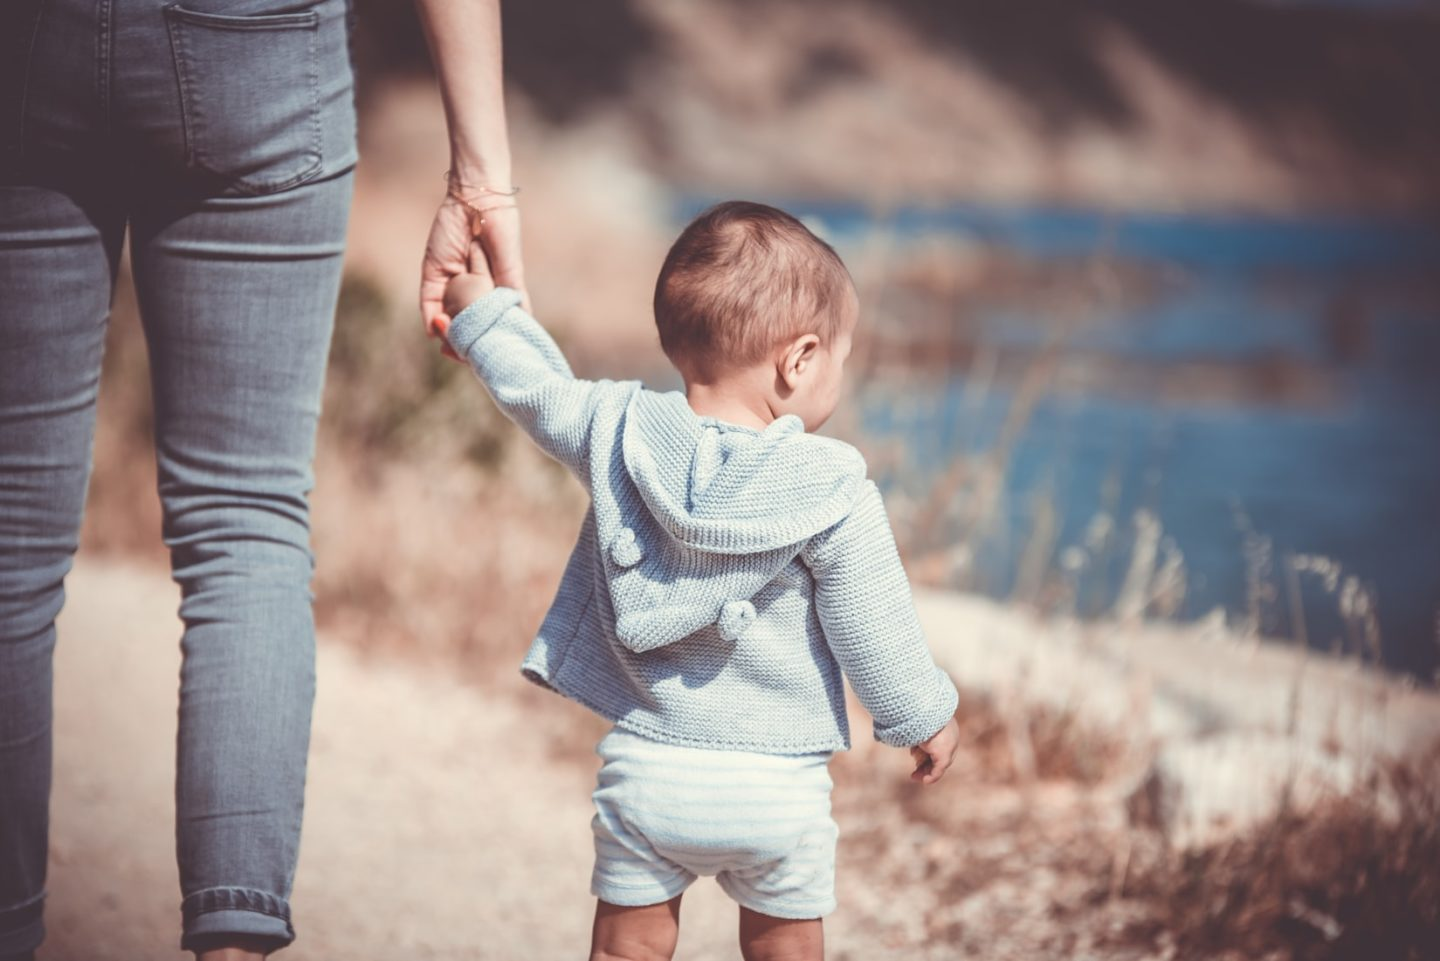 small boy and parent holding hands